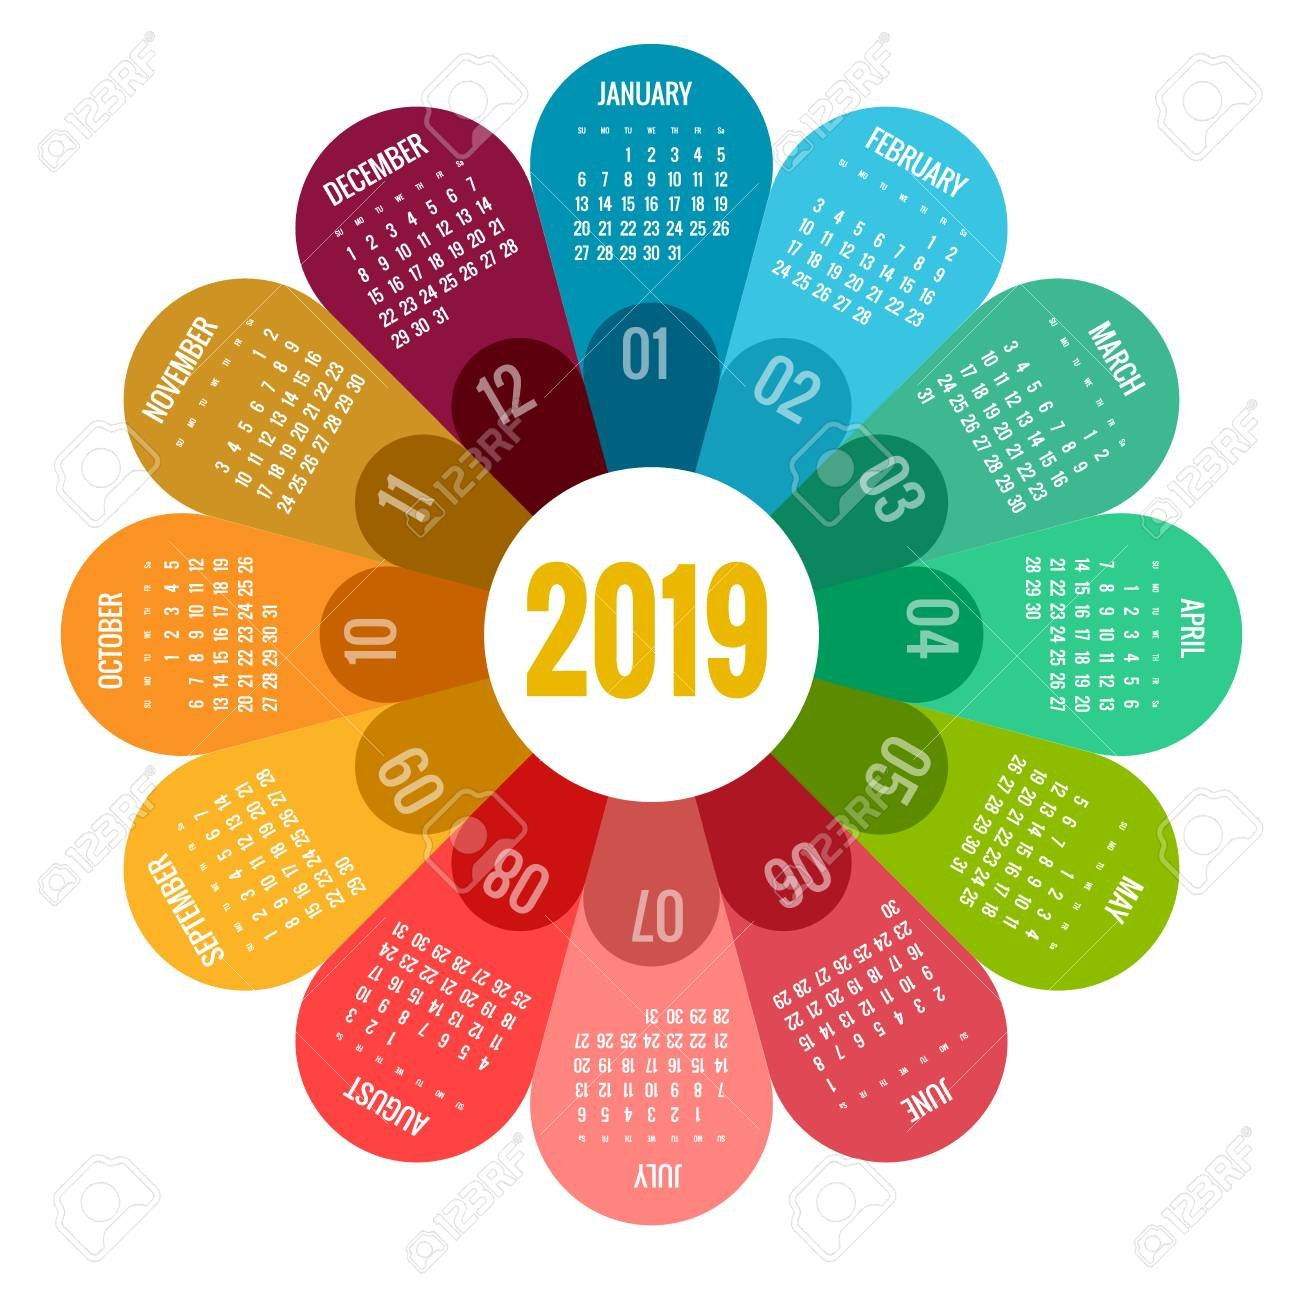 Colorful Round Calendar 2019 Design, Print Template, Your Logo Calendar 2019 Logo